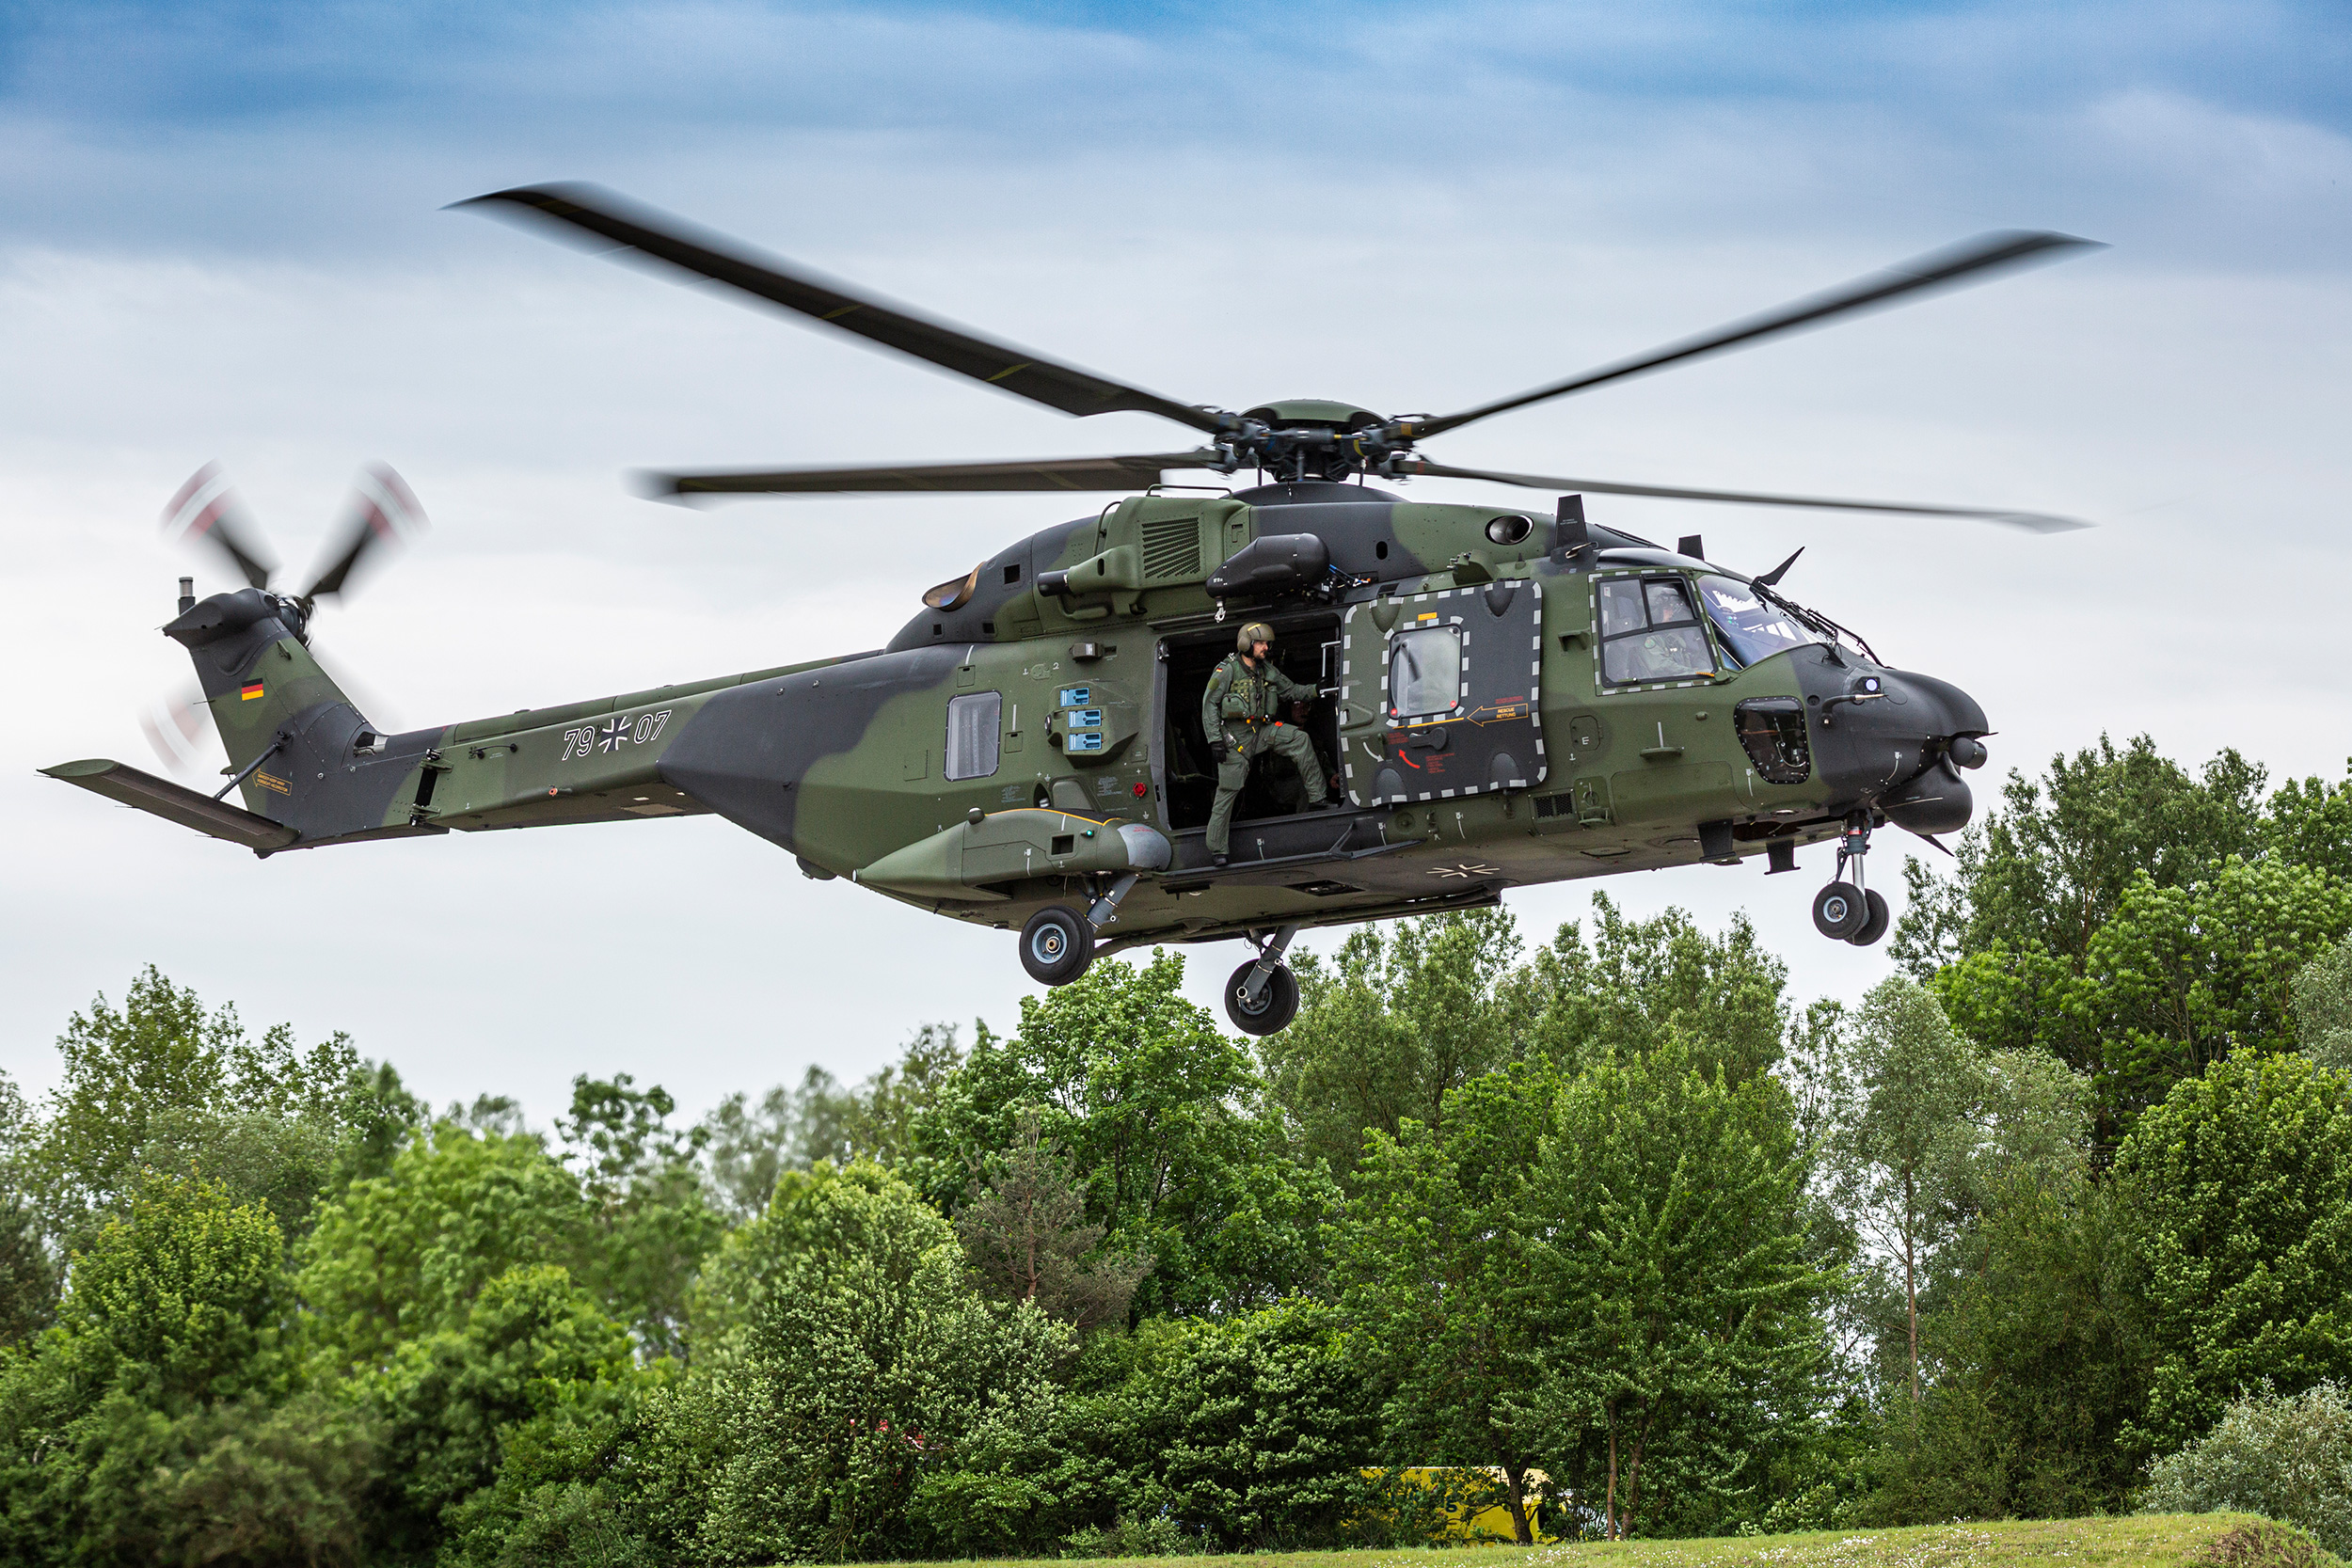 The German army currently has 74 NH90 TTH helicopters, while the German navy will start to receive its 18 helicopters in October 2019. Christian Keller Photo